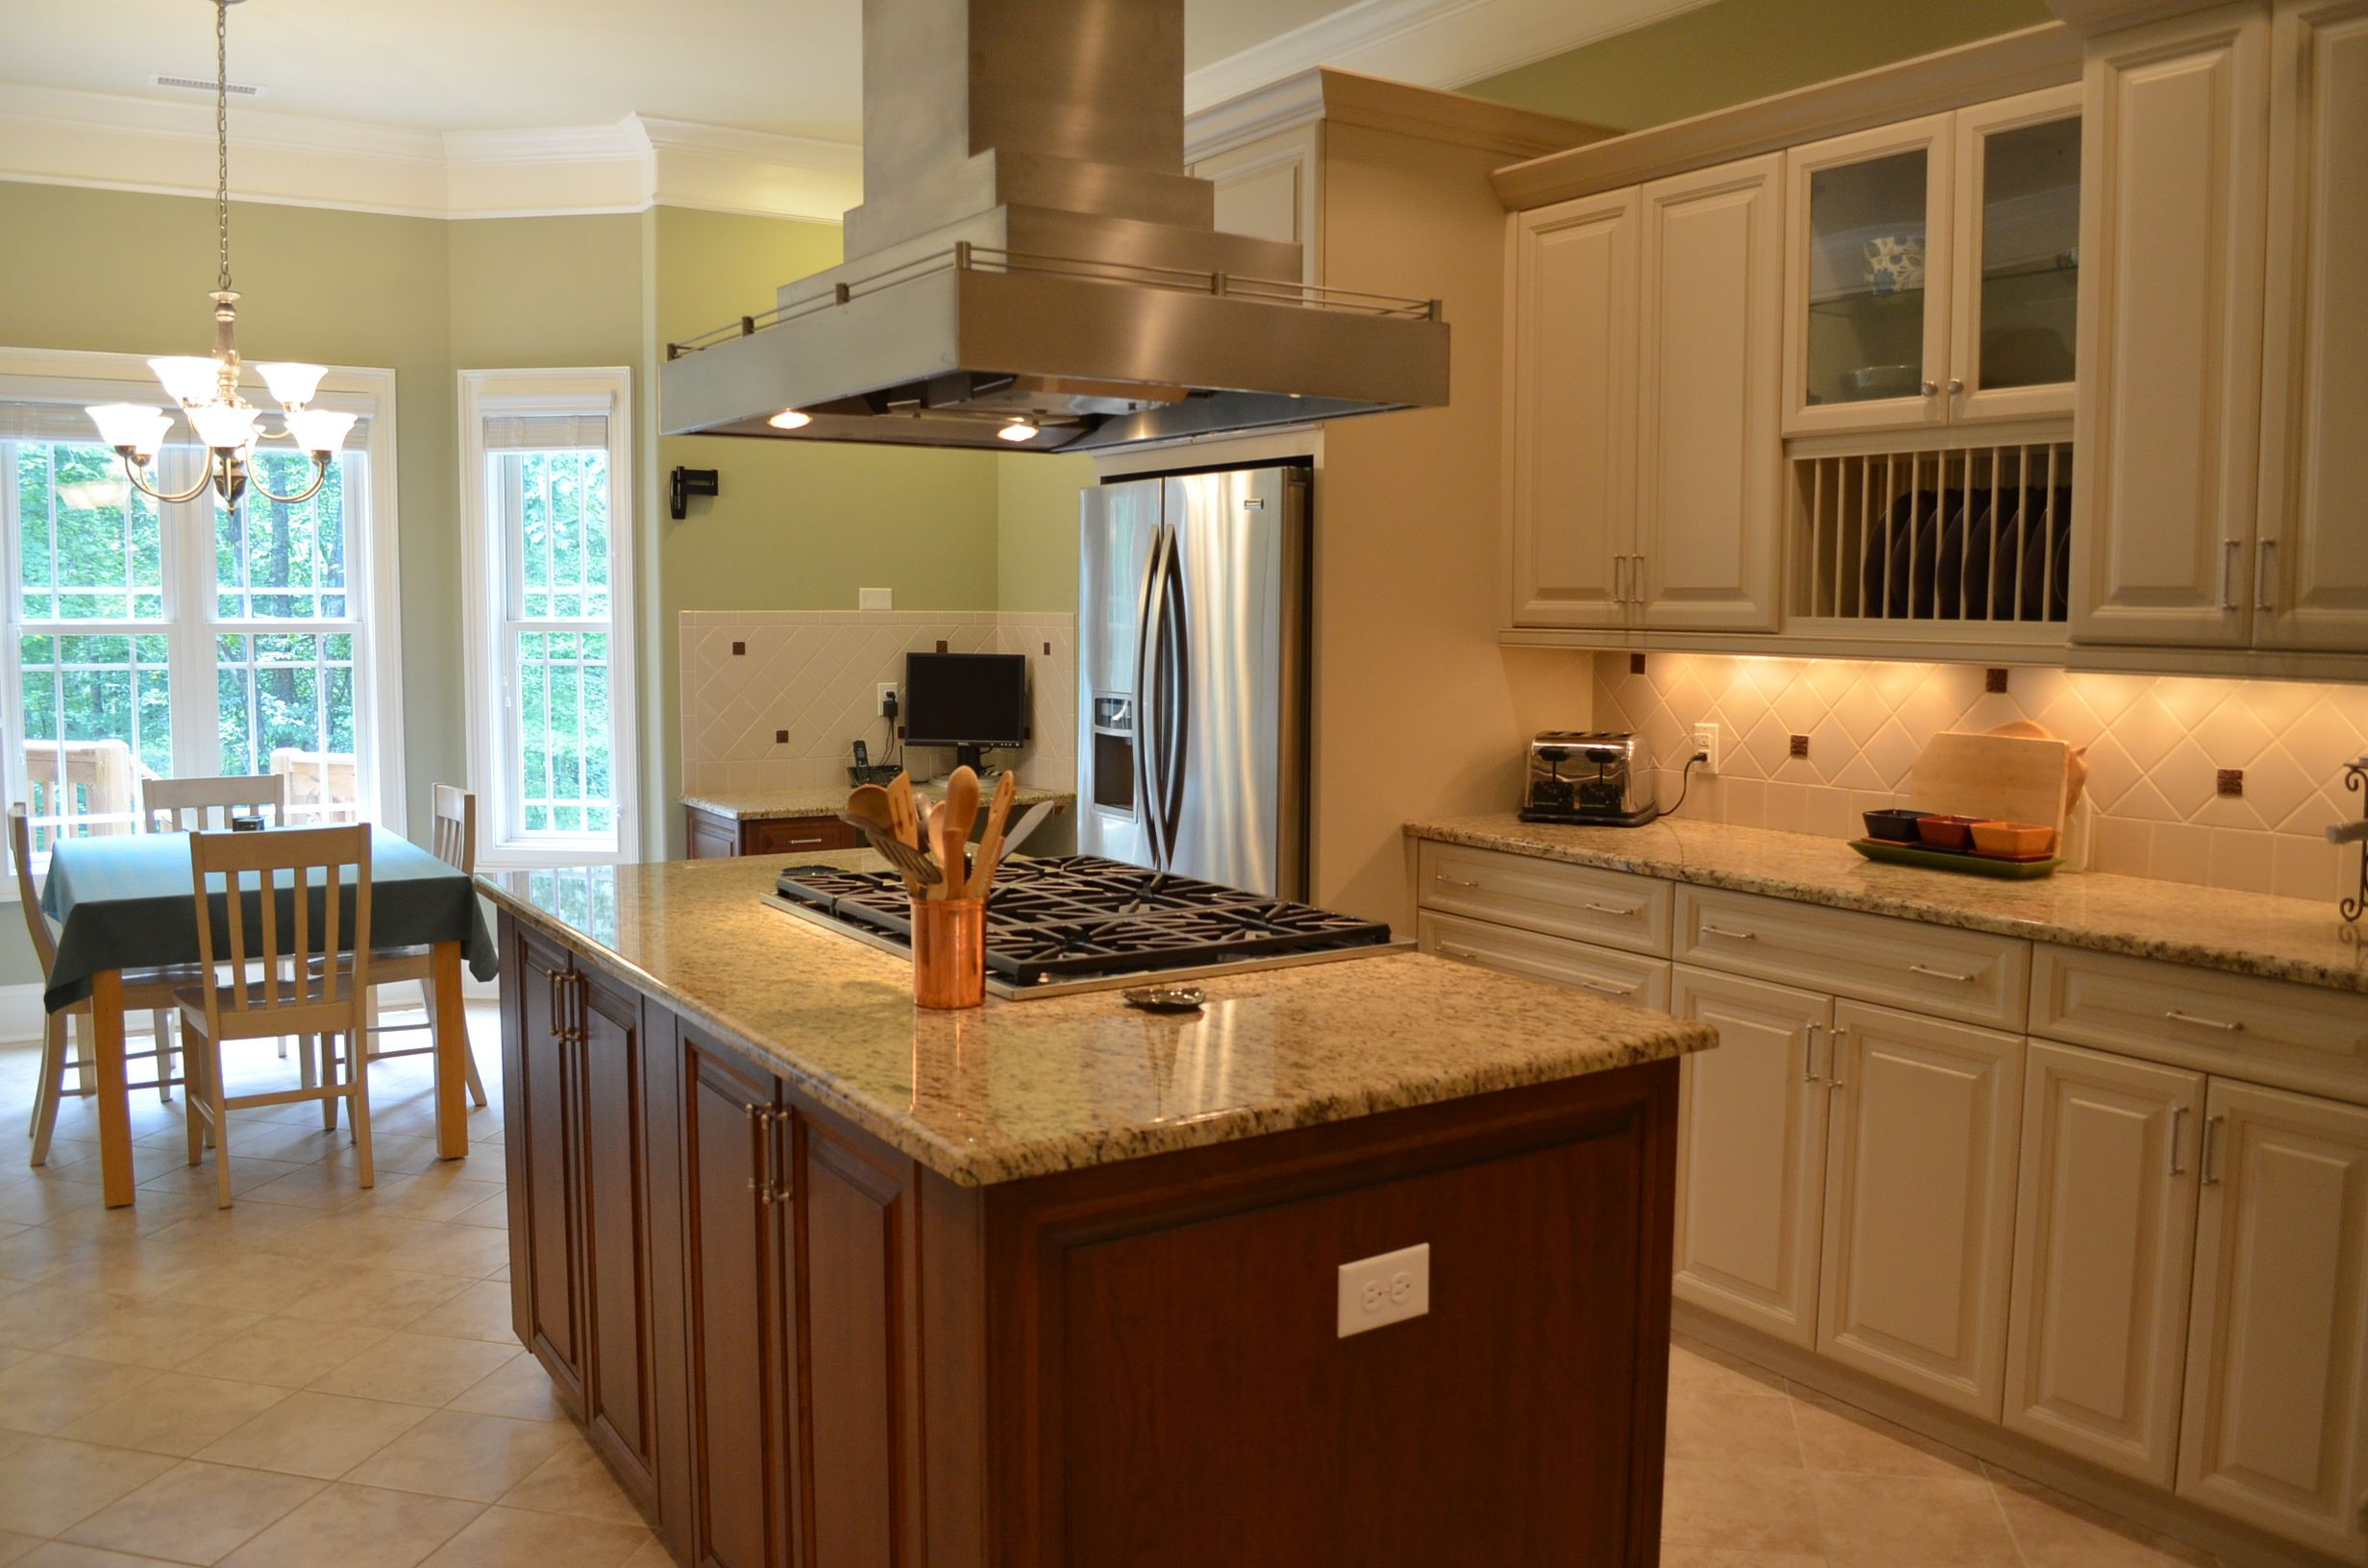 Sophisticated And Super Functional This Gorgeous Kitchen Has It All Six Burner Dacor Gas Cooktop With Overhead Exhaust Fan Dual Stainless